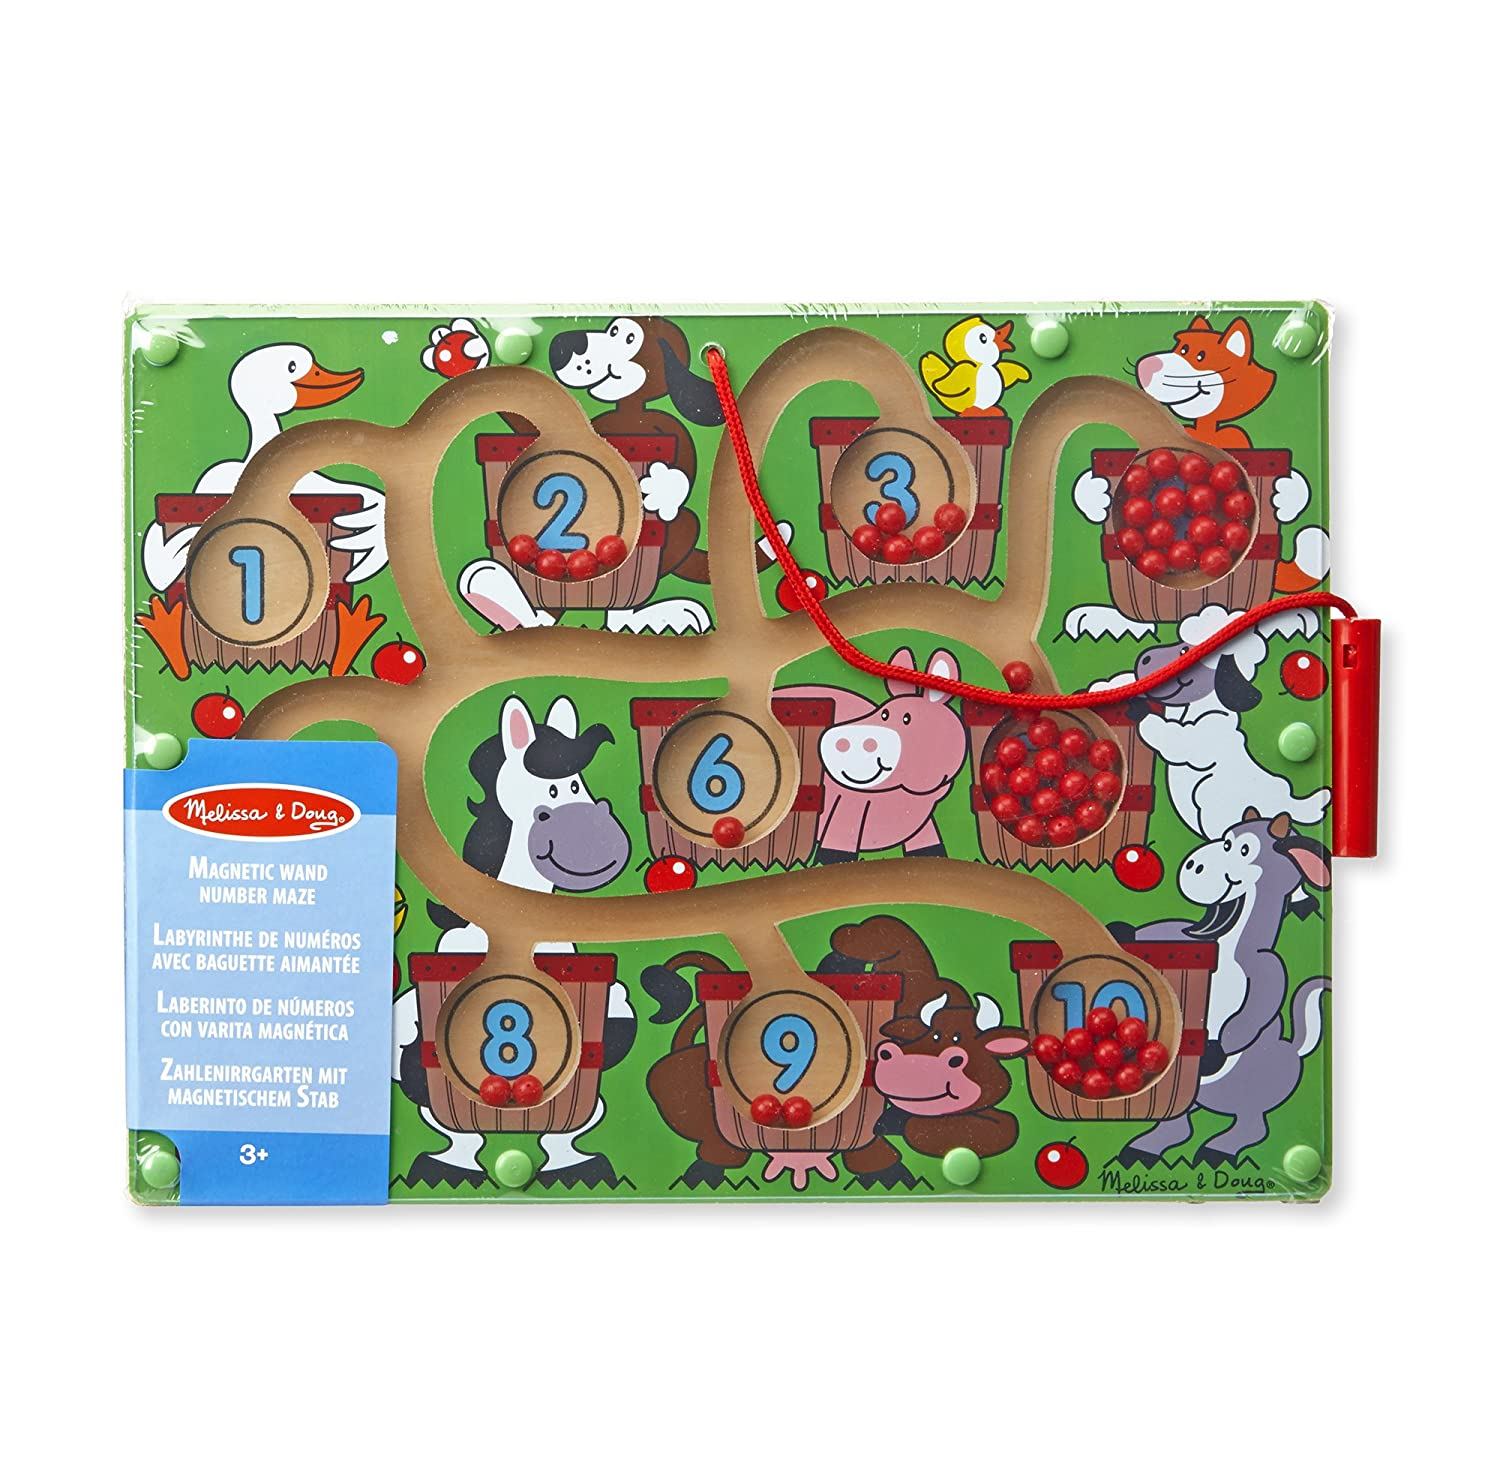 Melissa /& Doug Magnetic Wand Number Maze Wooden Puzzle Activity